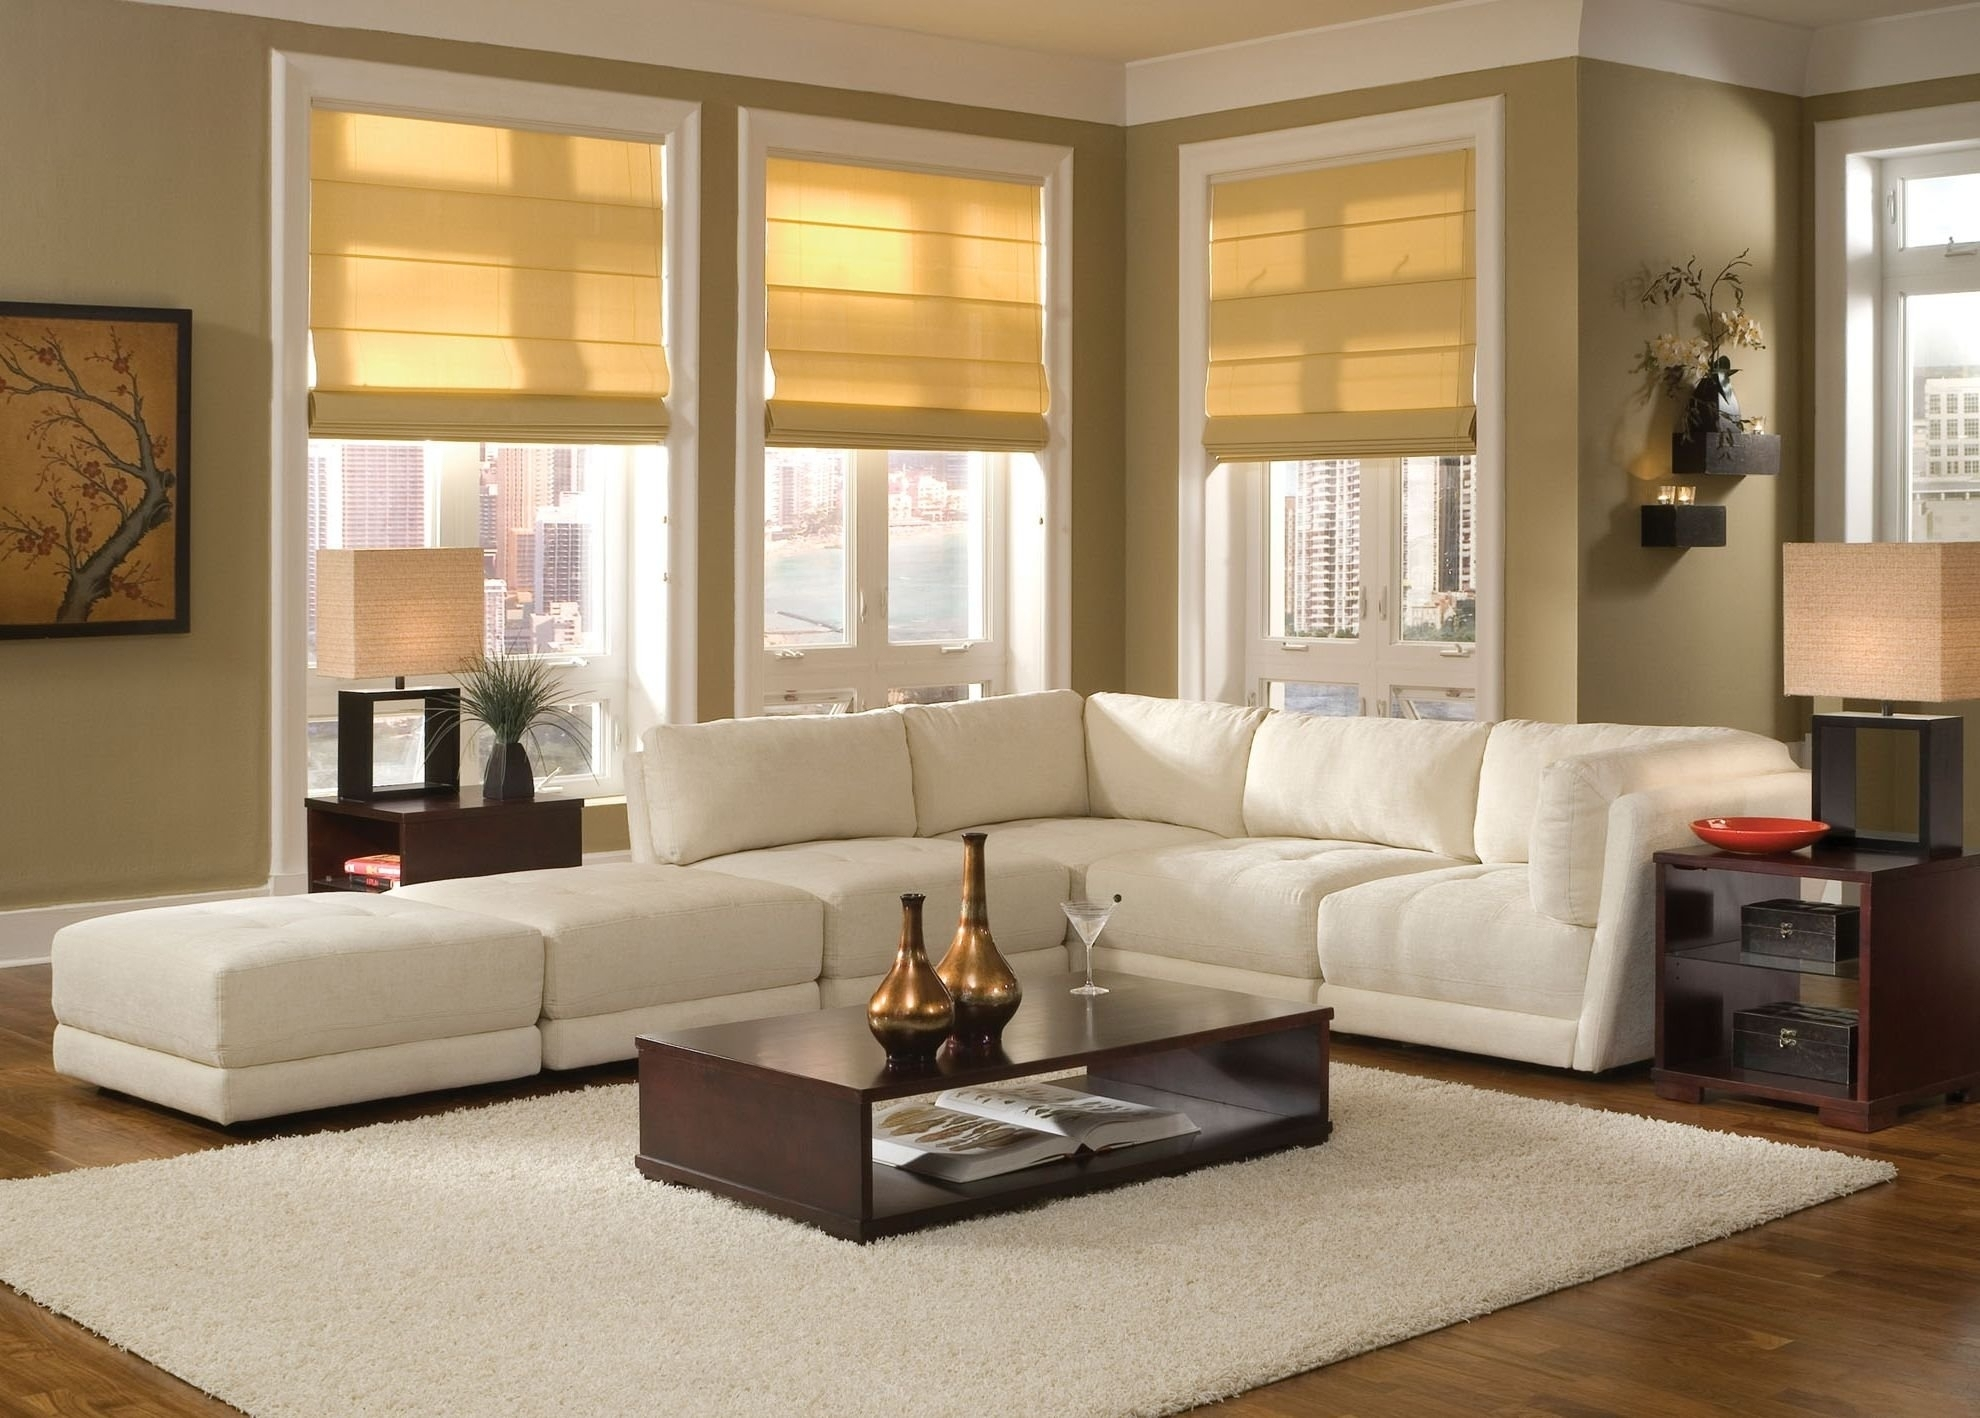 Living Room : Small Living Room With Sectional Sofa Plus Most With Sectional Sofas Decorating (View 6 of 10)